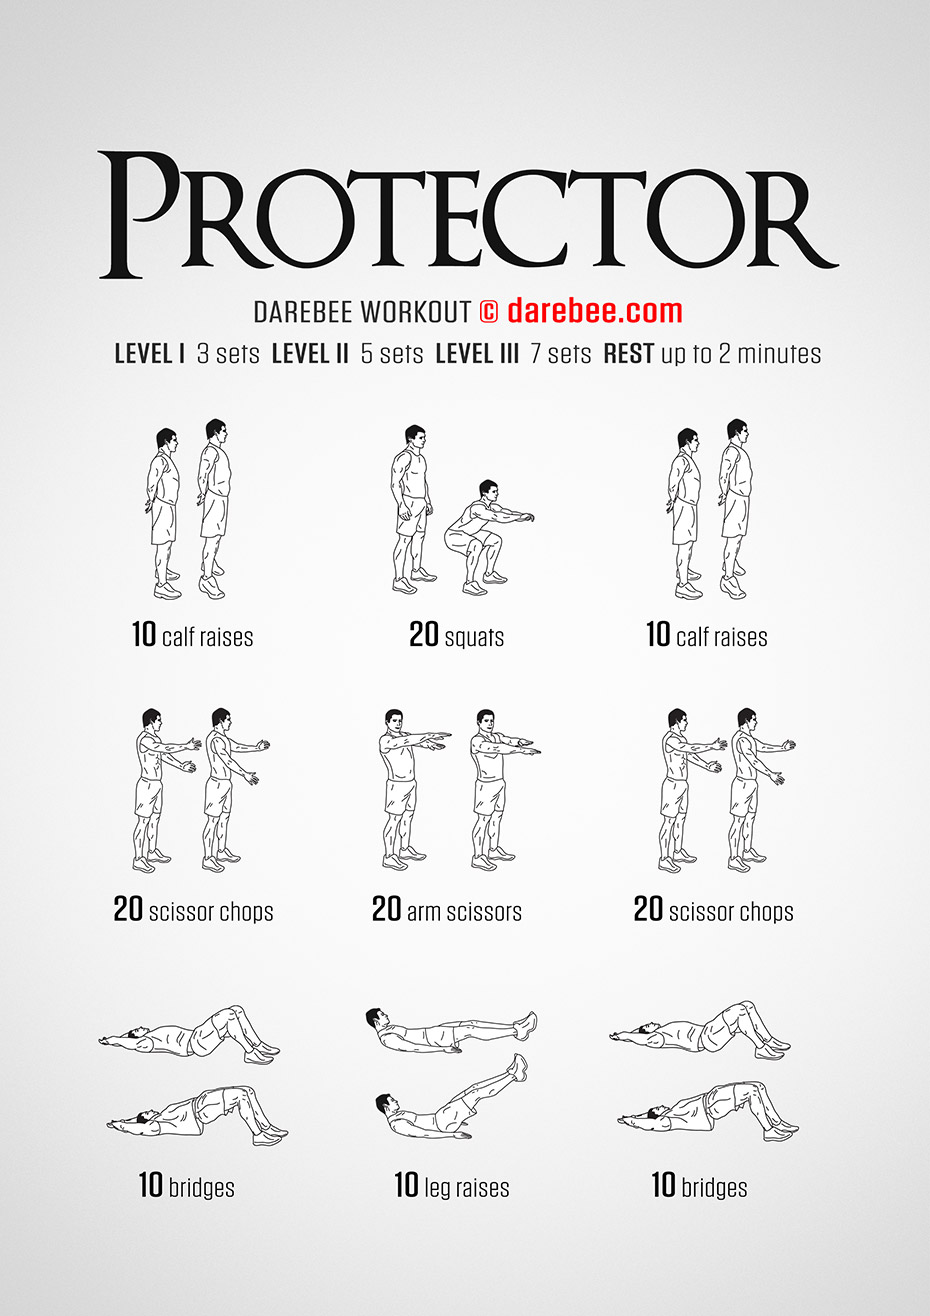 Protector is a Free Full Body Darebee workout.